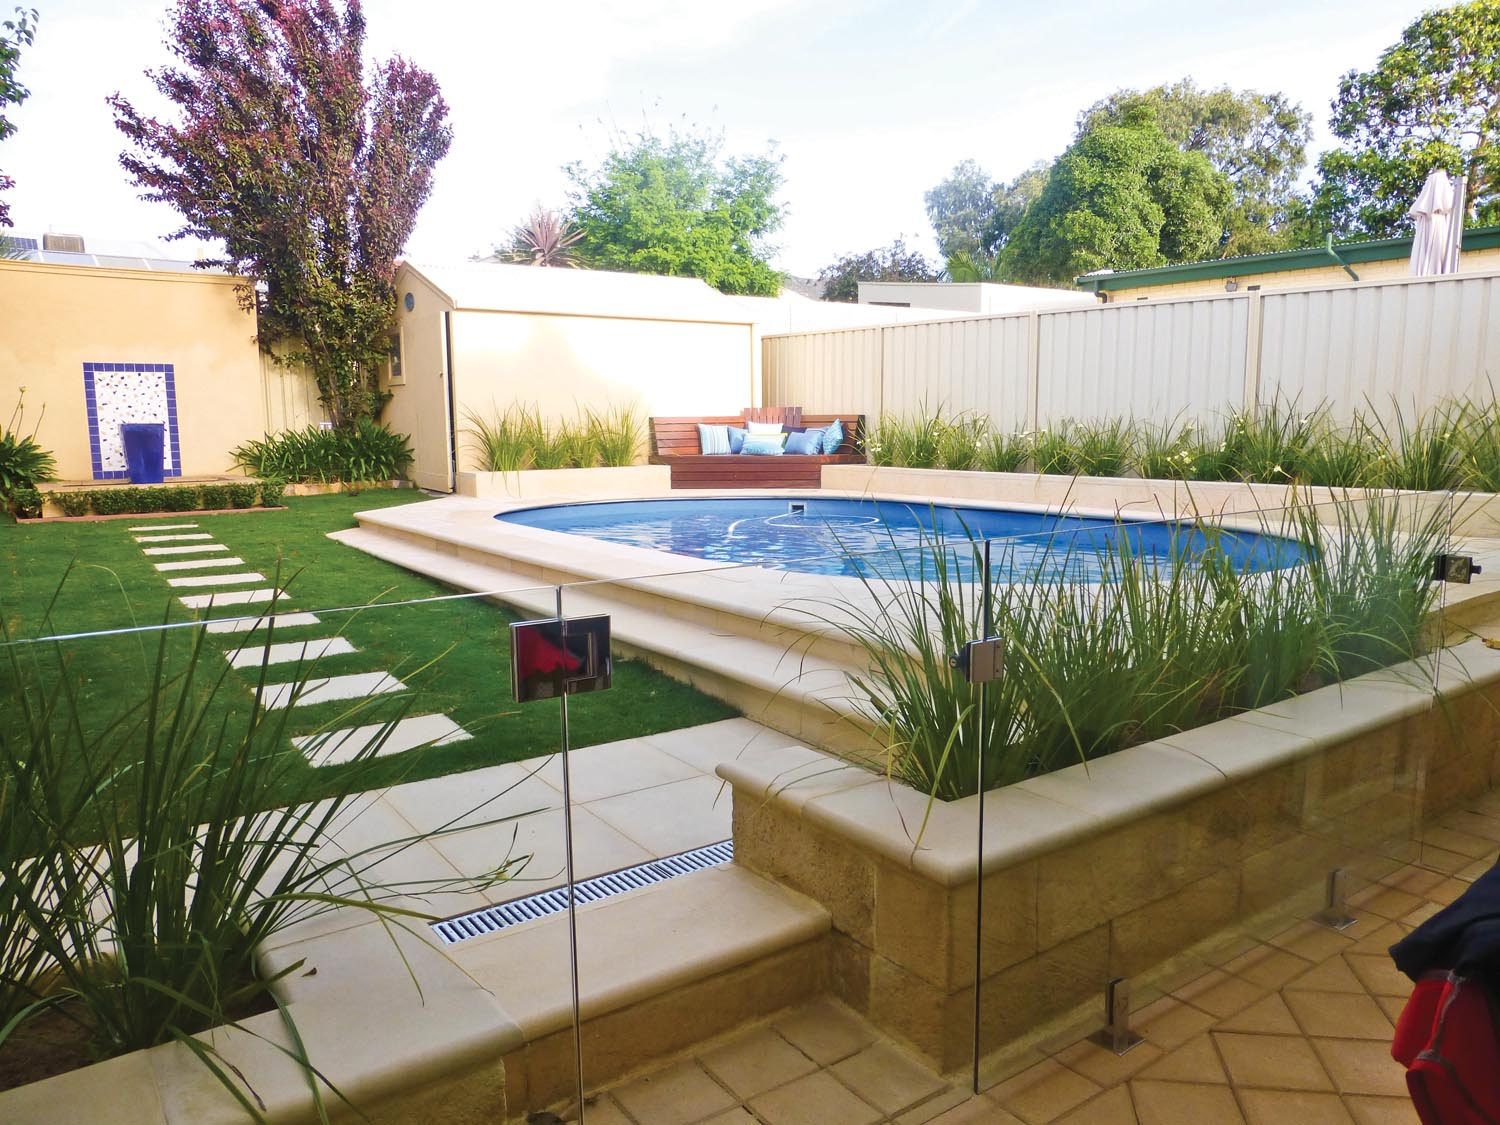 The rise of above-ground pools